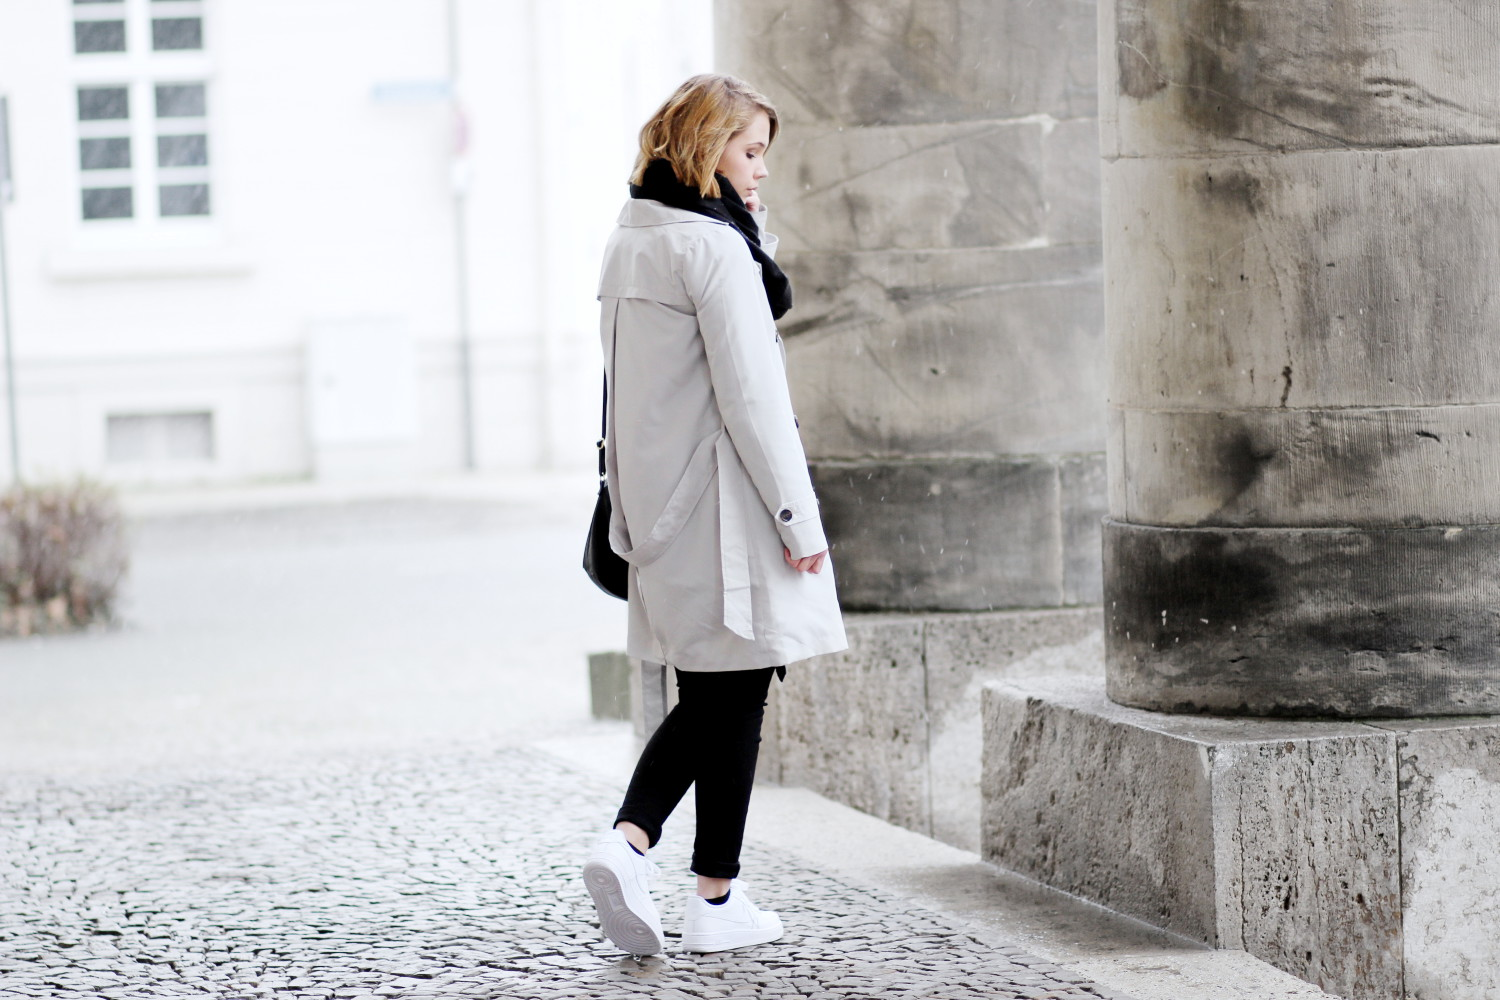 Bezaubernde Nana, bezauberndenana.de, Fashionblog, Modeblog, Germany, Deutschland, Outfit, Streetstyle, Nike Air Force 1 Outfit, , DefShop, Grauer Trenchcoat von Vila, Casual Outfit